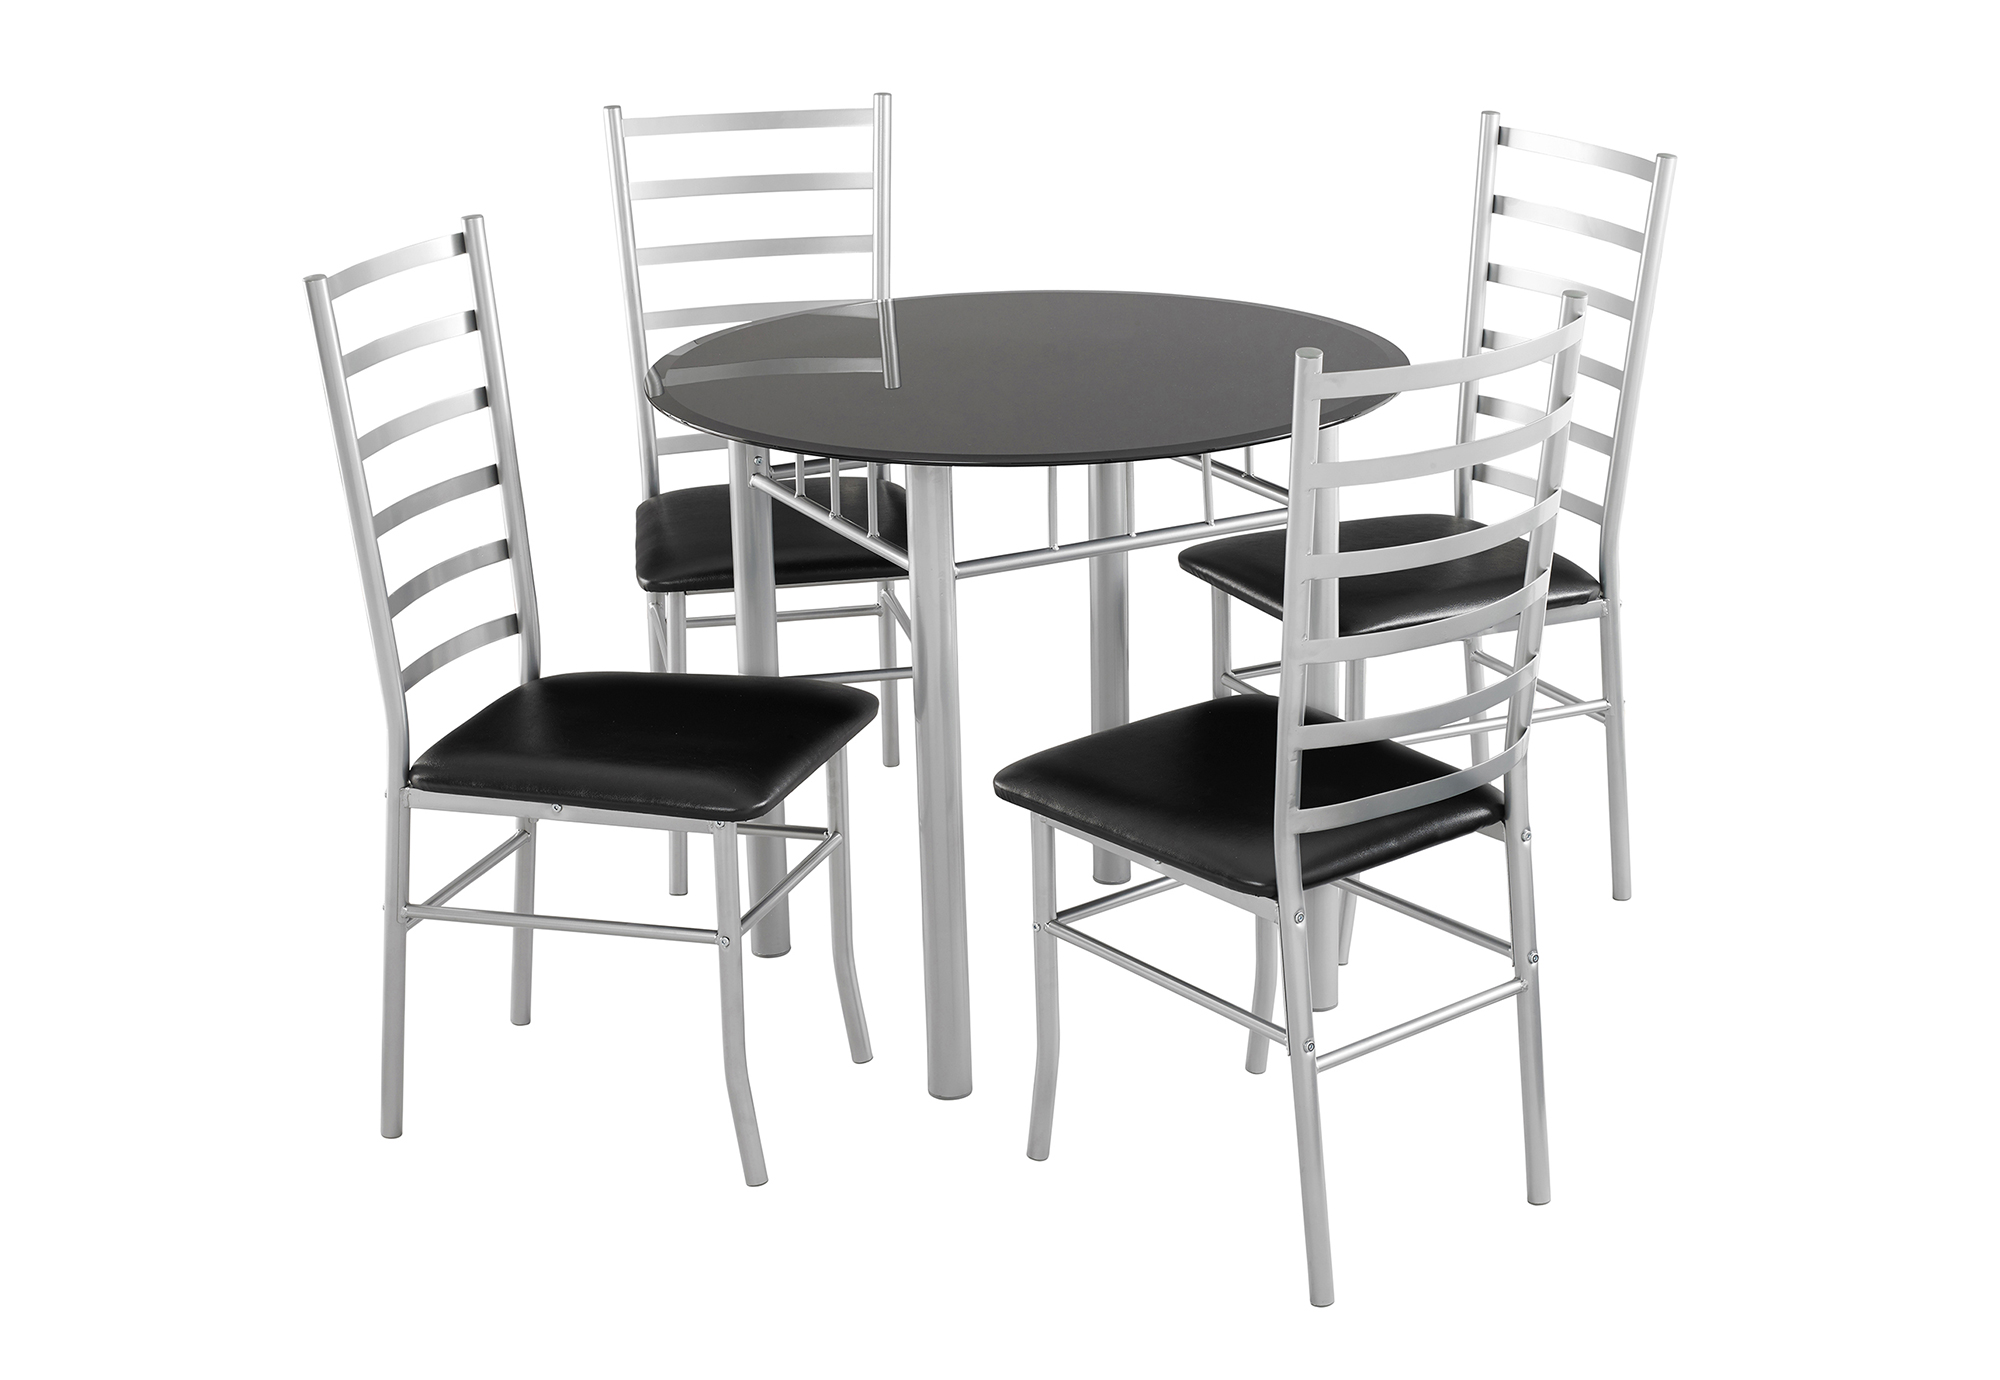 Lincoln Dining Set 4 Seater   Black Glass Dining Table U0026 4 Chairs   Padded  Seats